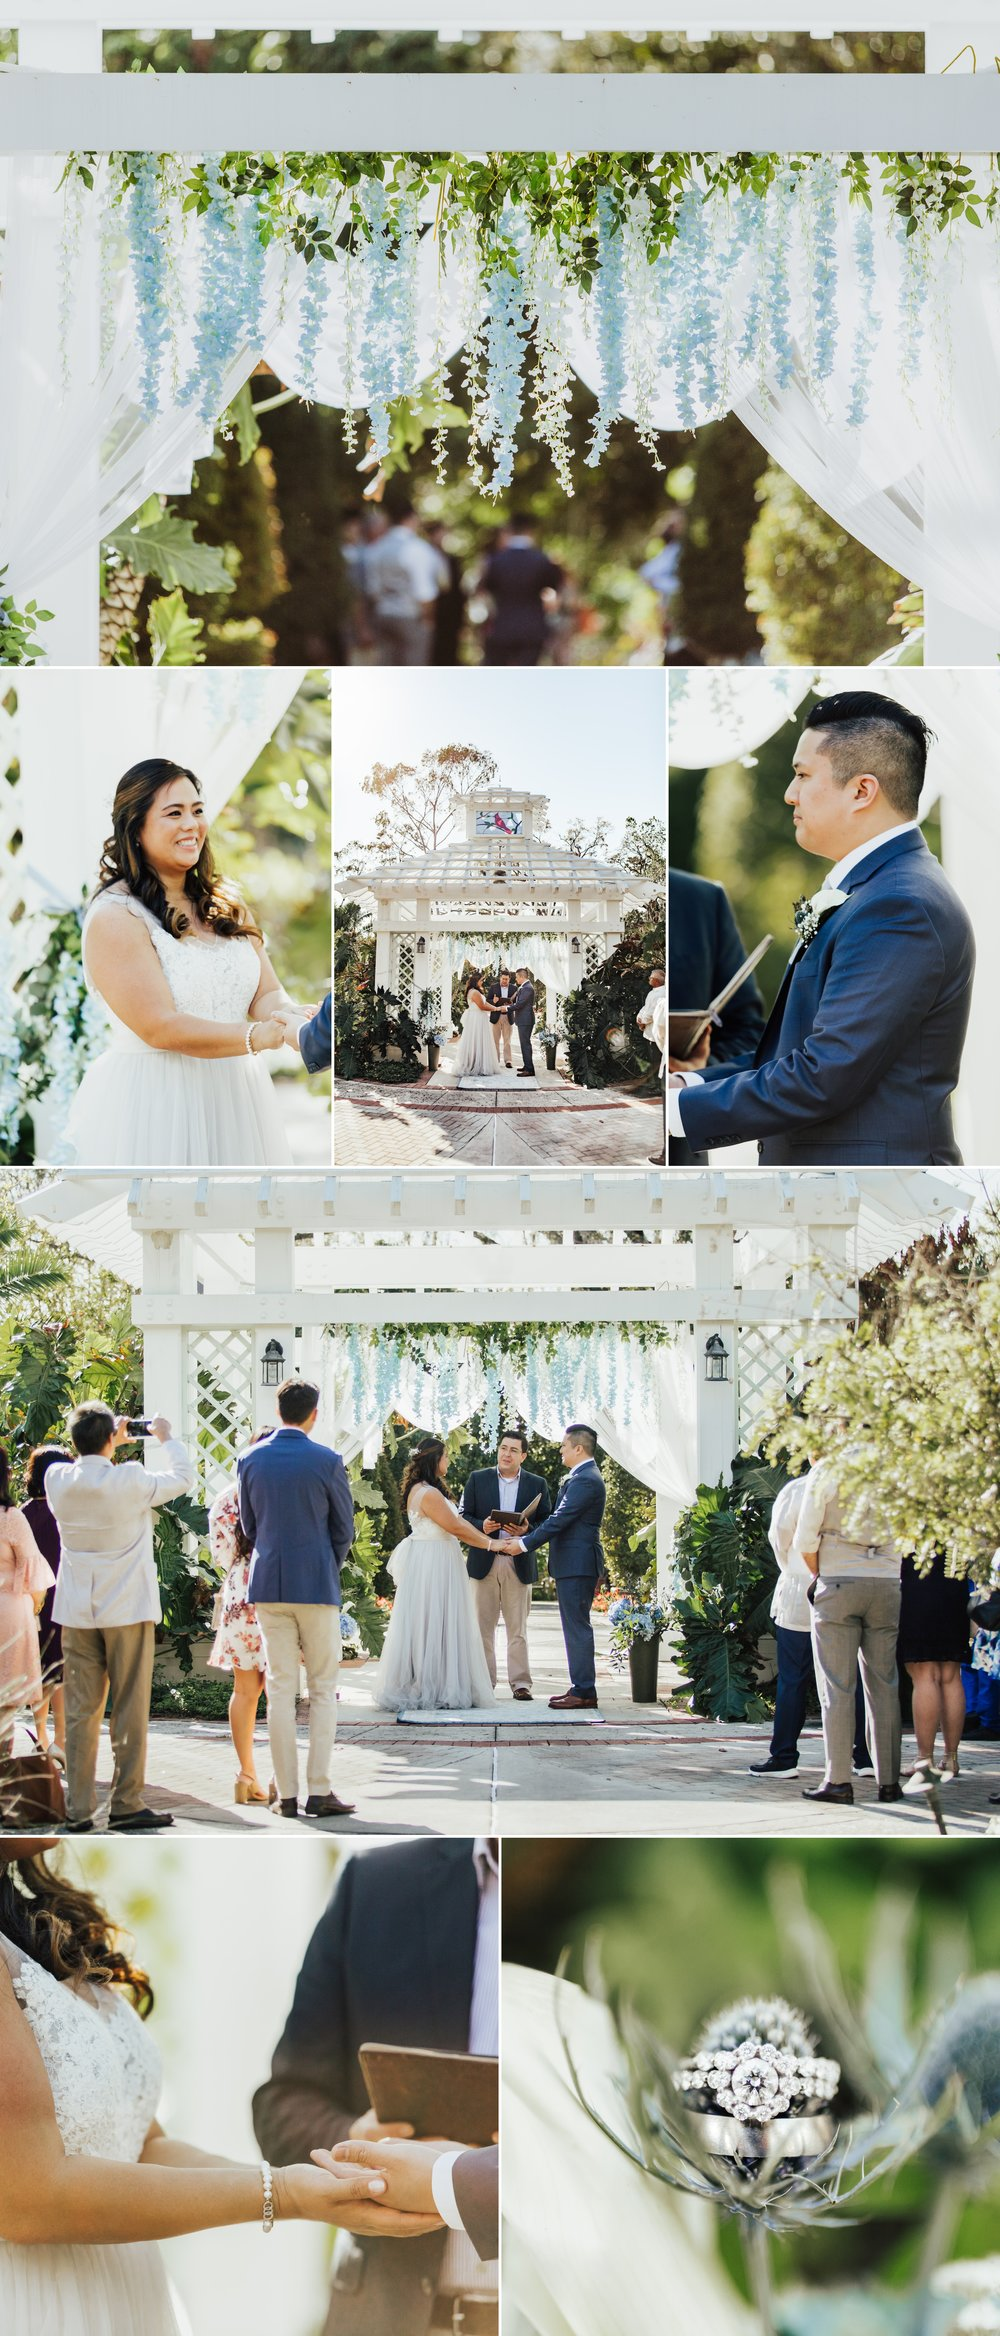 Romantic Leu Gardens Wedding Pictures - Winter Park Wedding Photographer Shaina DeCiryan- Effie+Phillip4.jpg